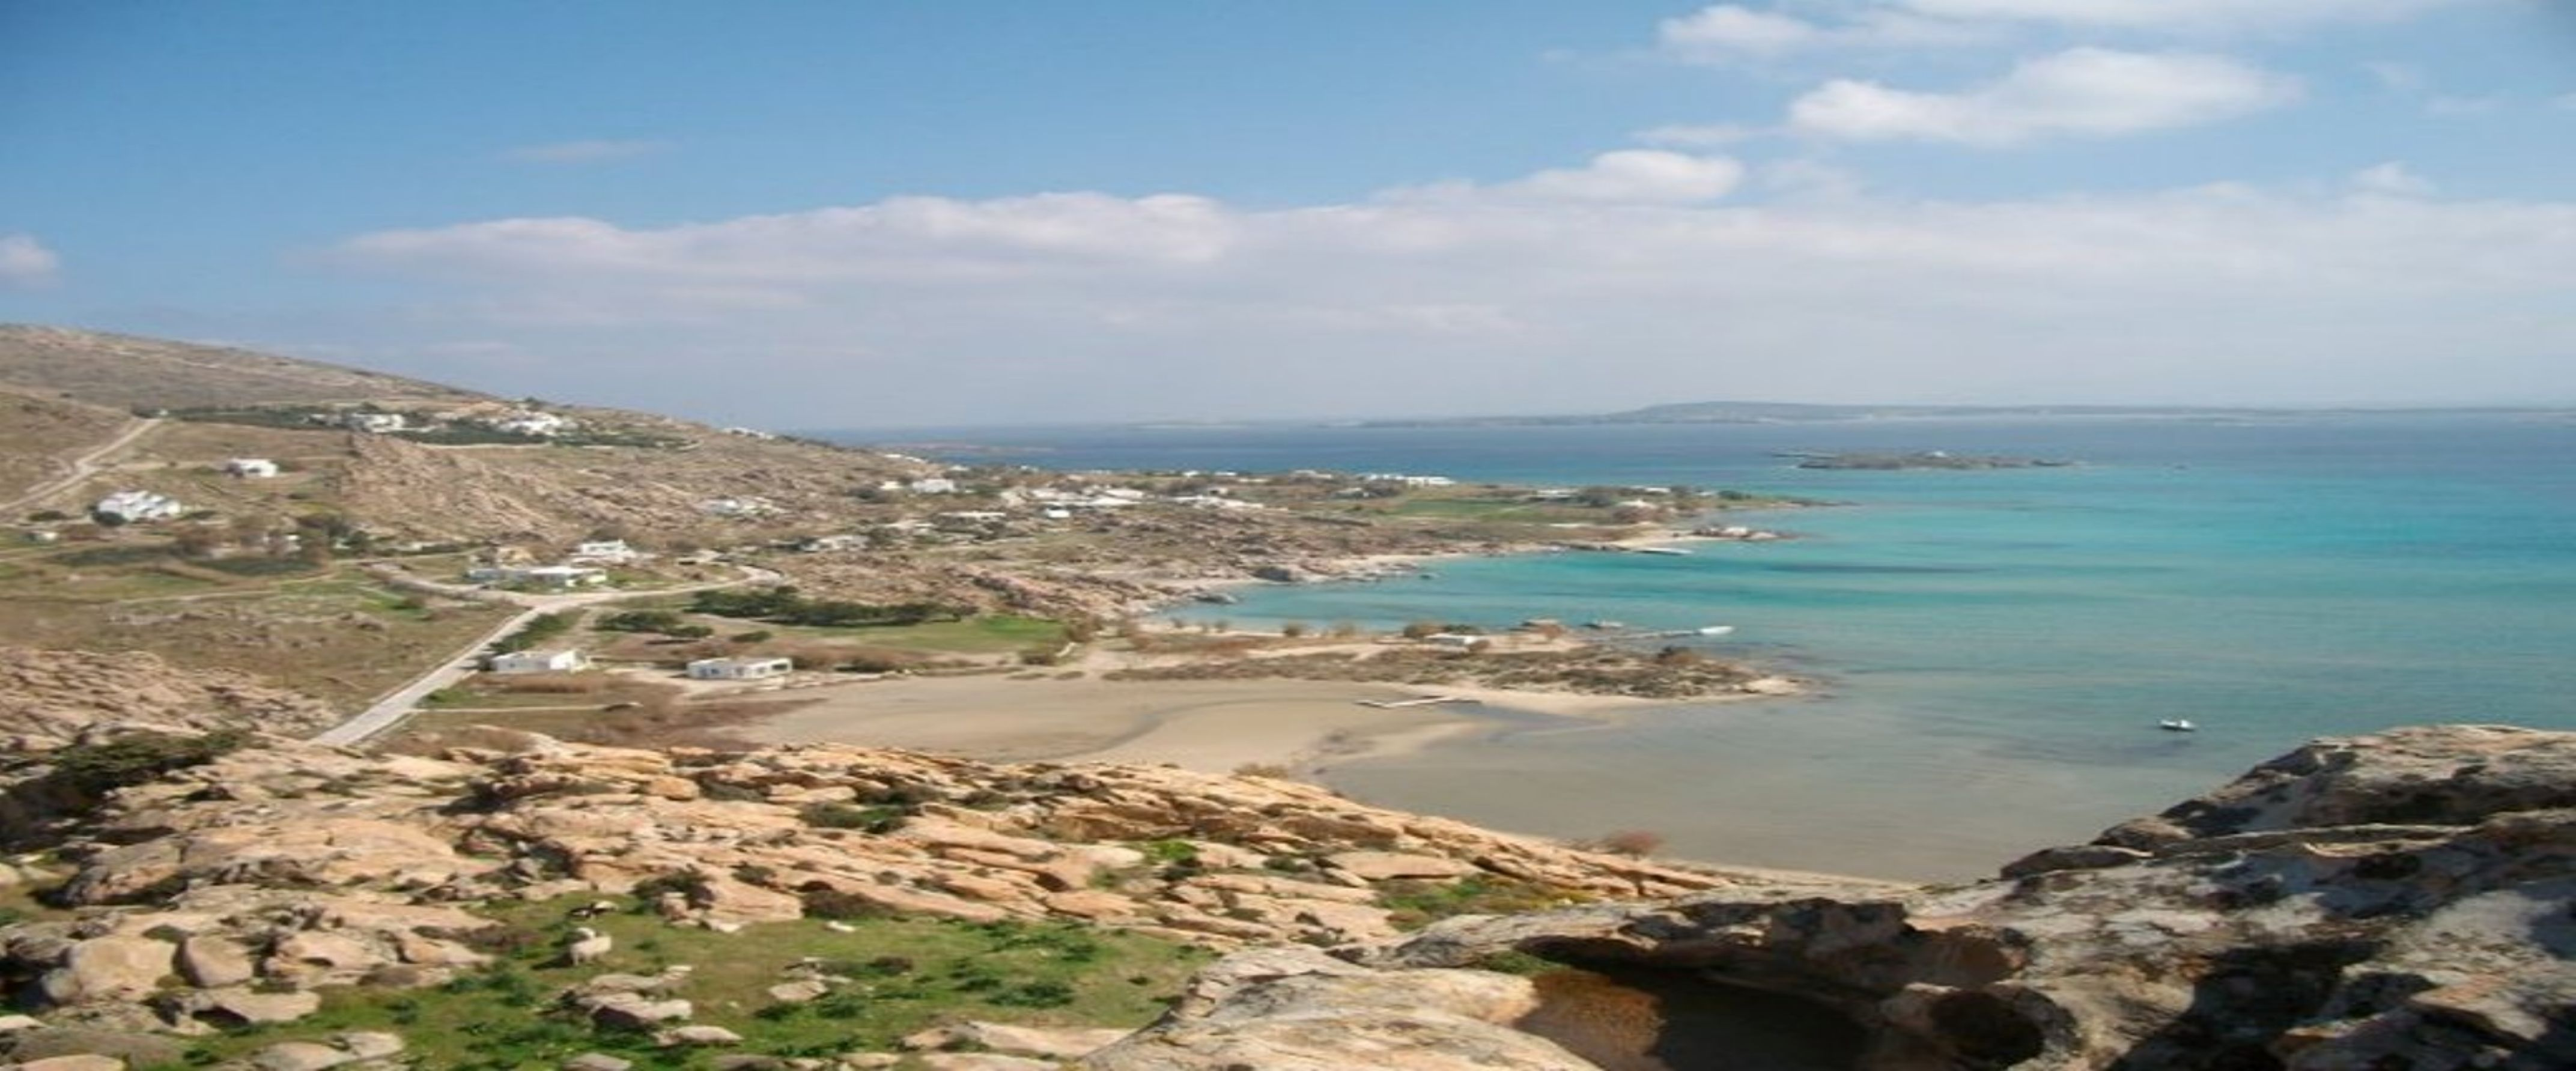 Kolybithres beach on Paros